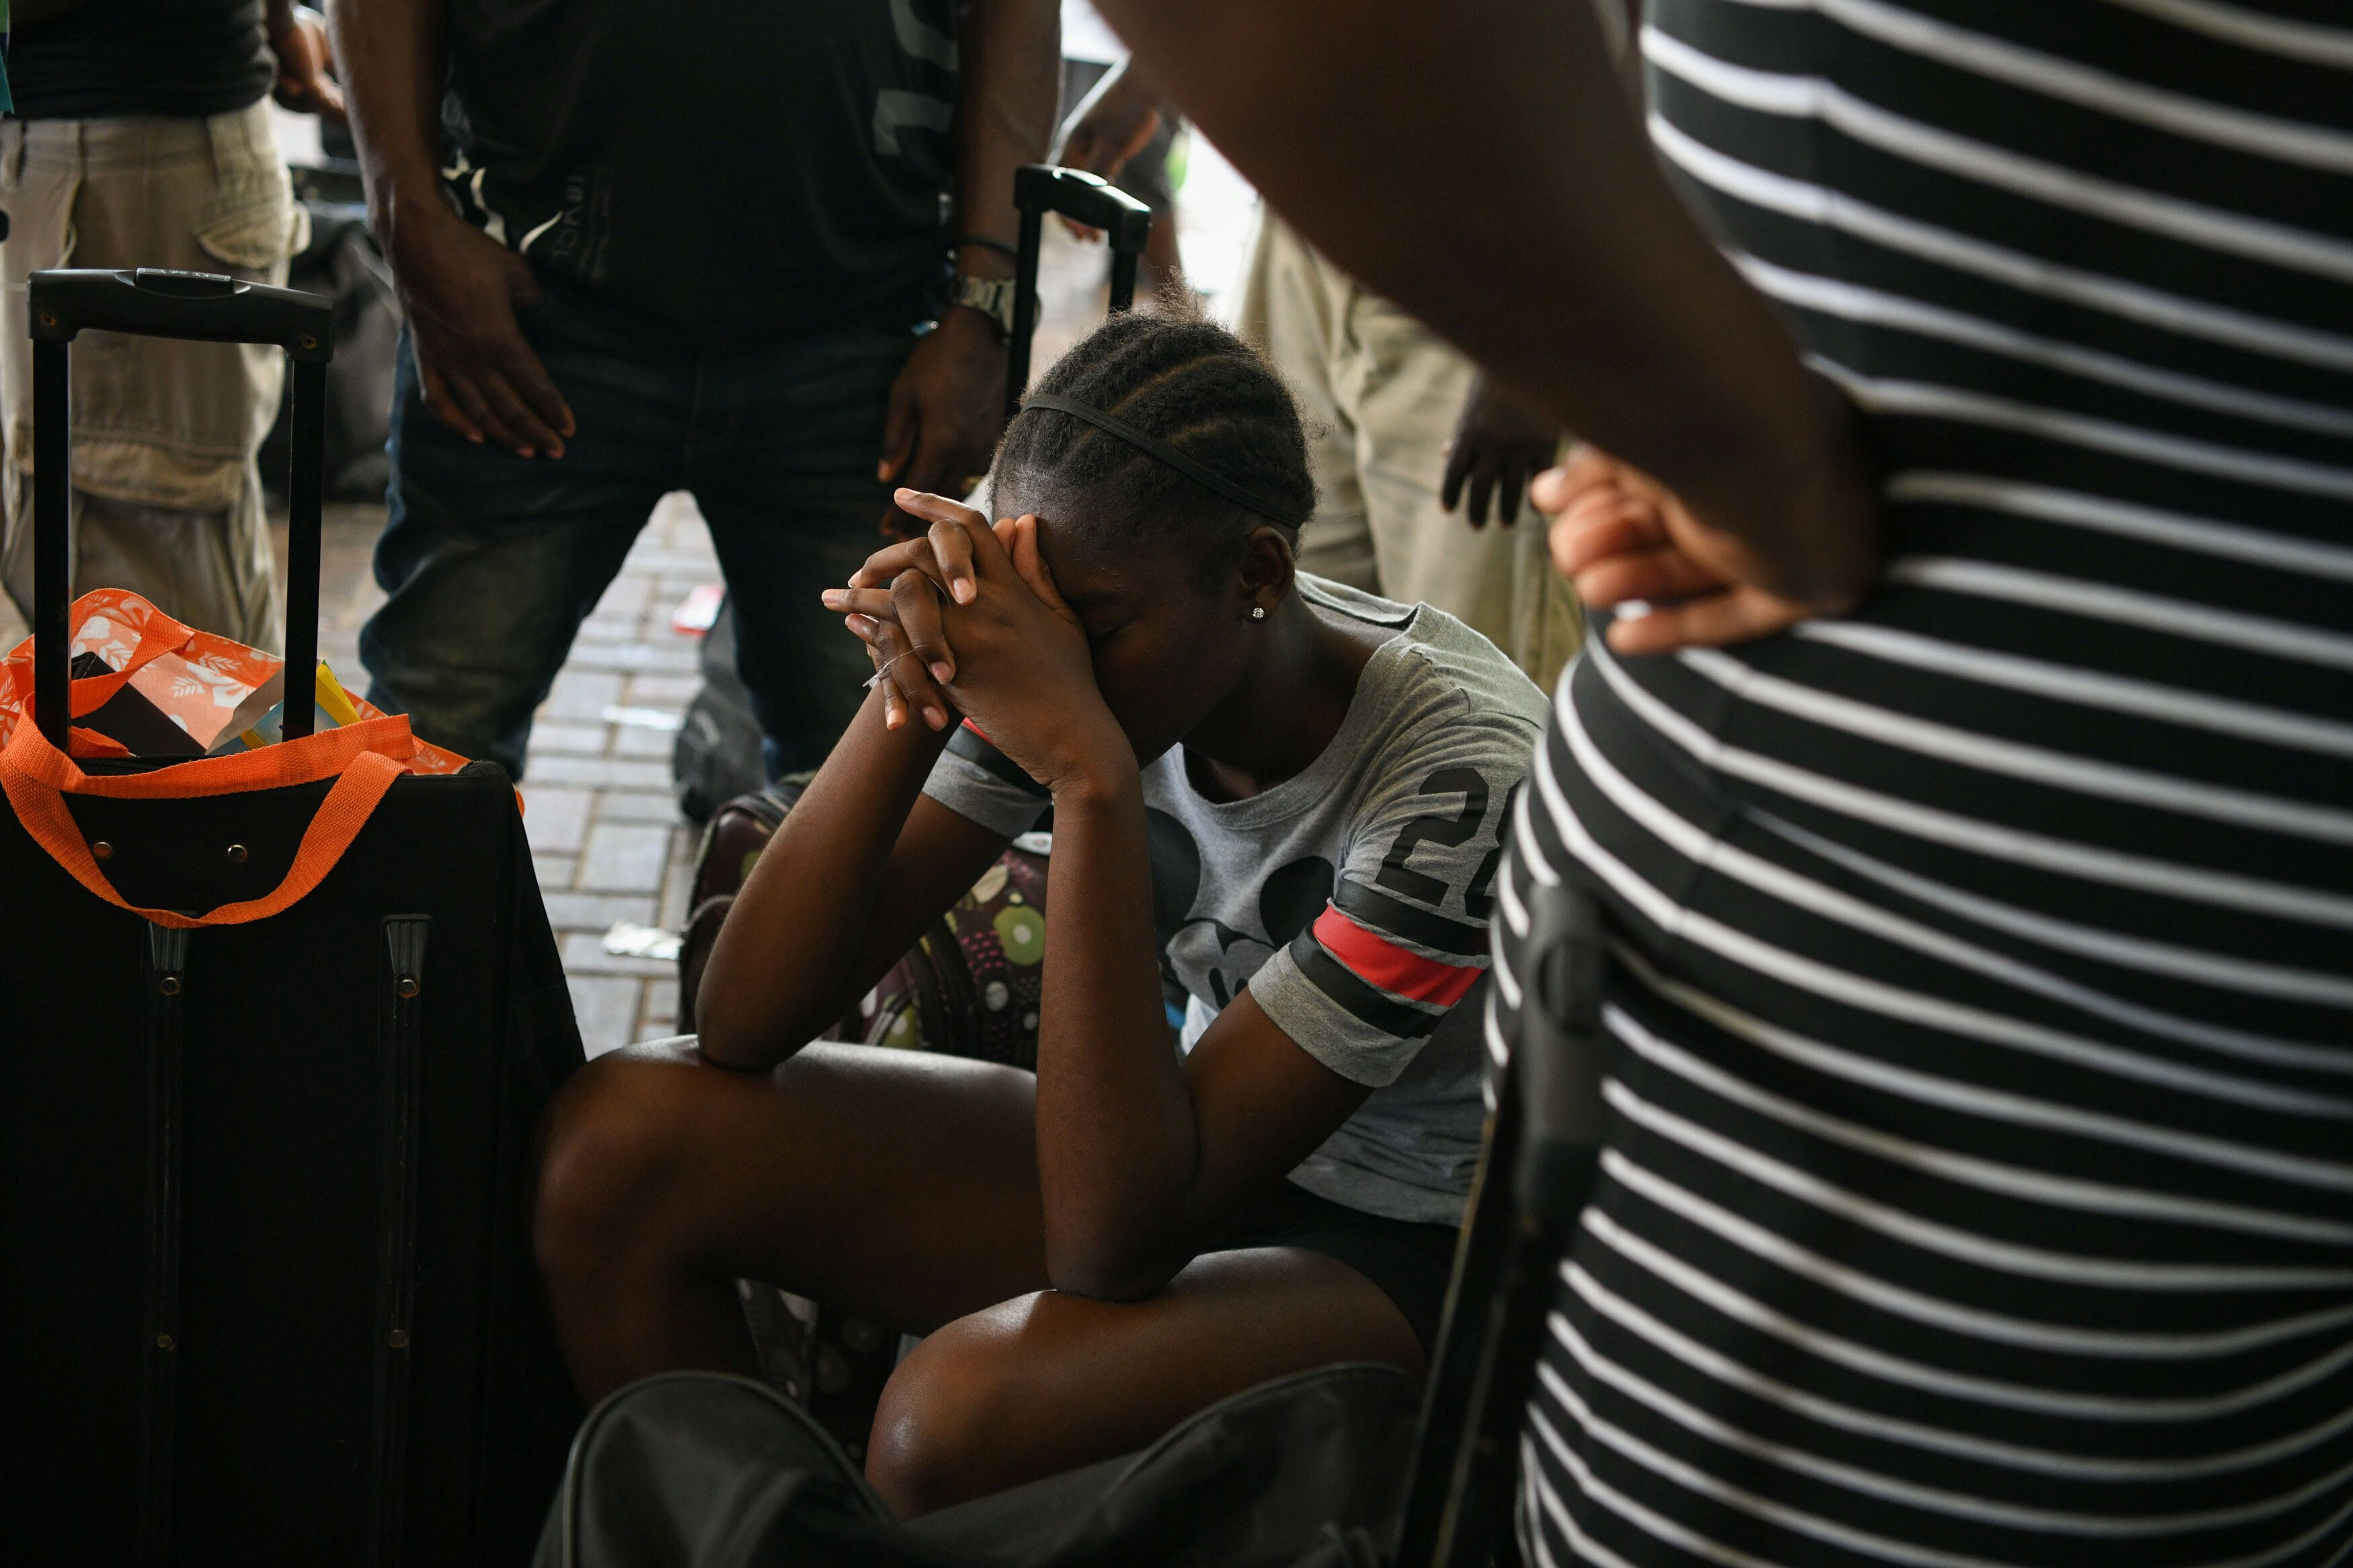 Residents wait at the airport in hopes of evacuating the island in the wake of Hurricane Dorian in Marsh Harbour, Great Abaco